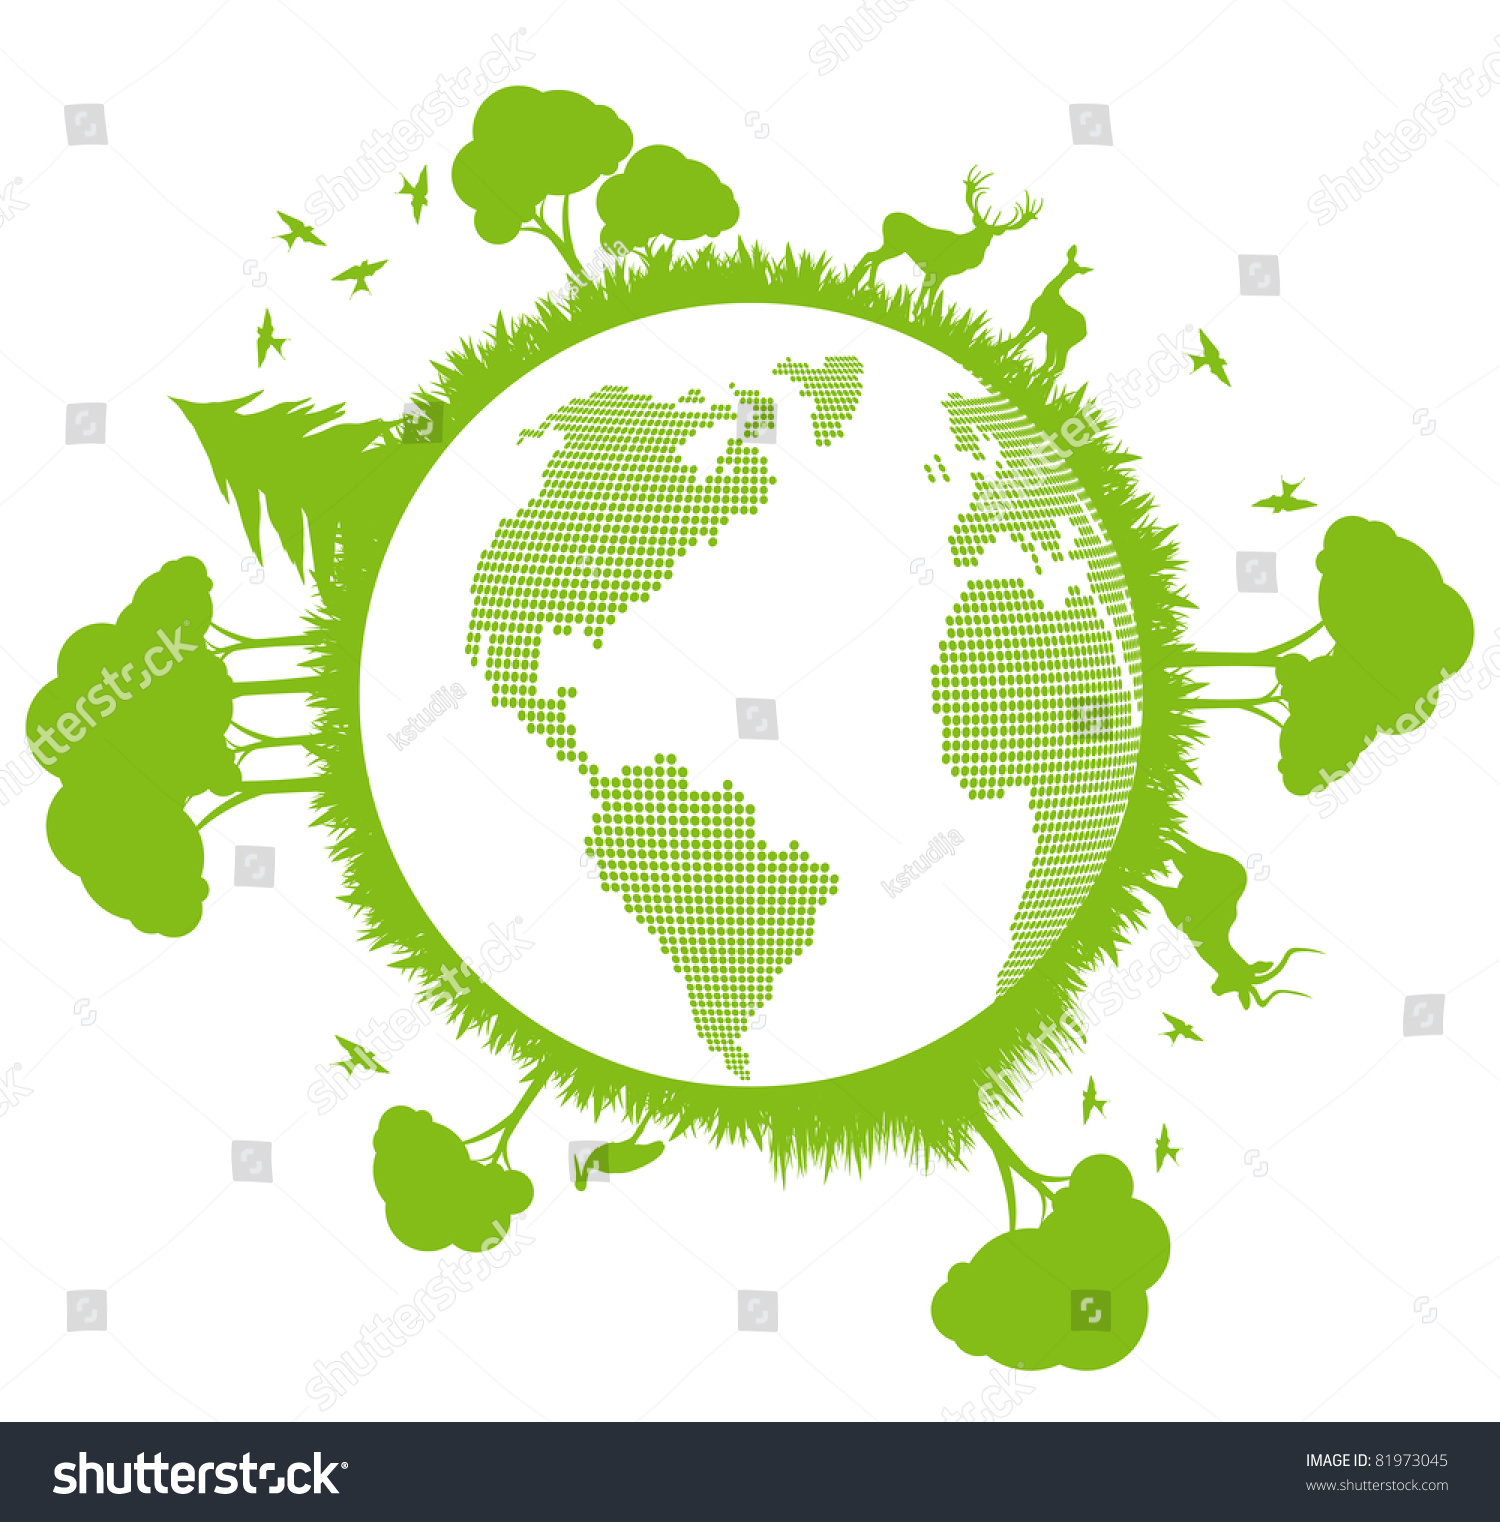 Green And Clean Ecology Earth Globe Concept Vector ...